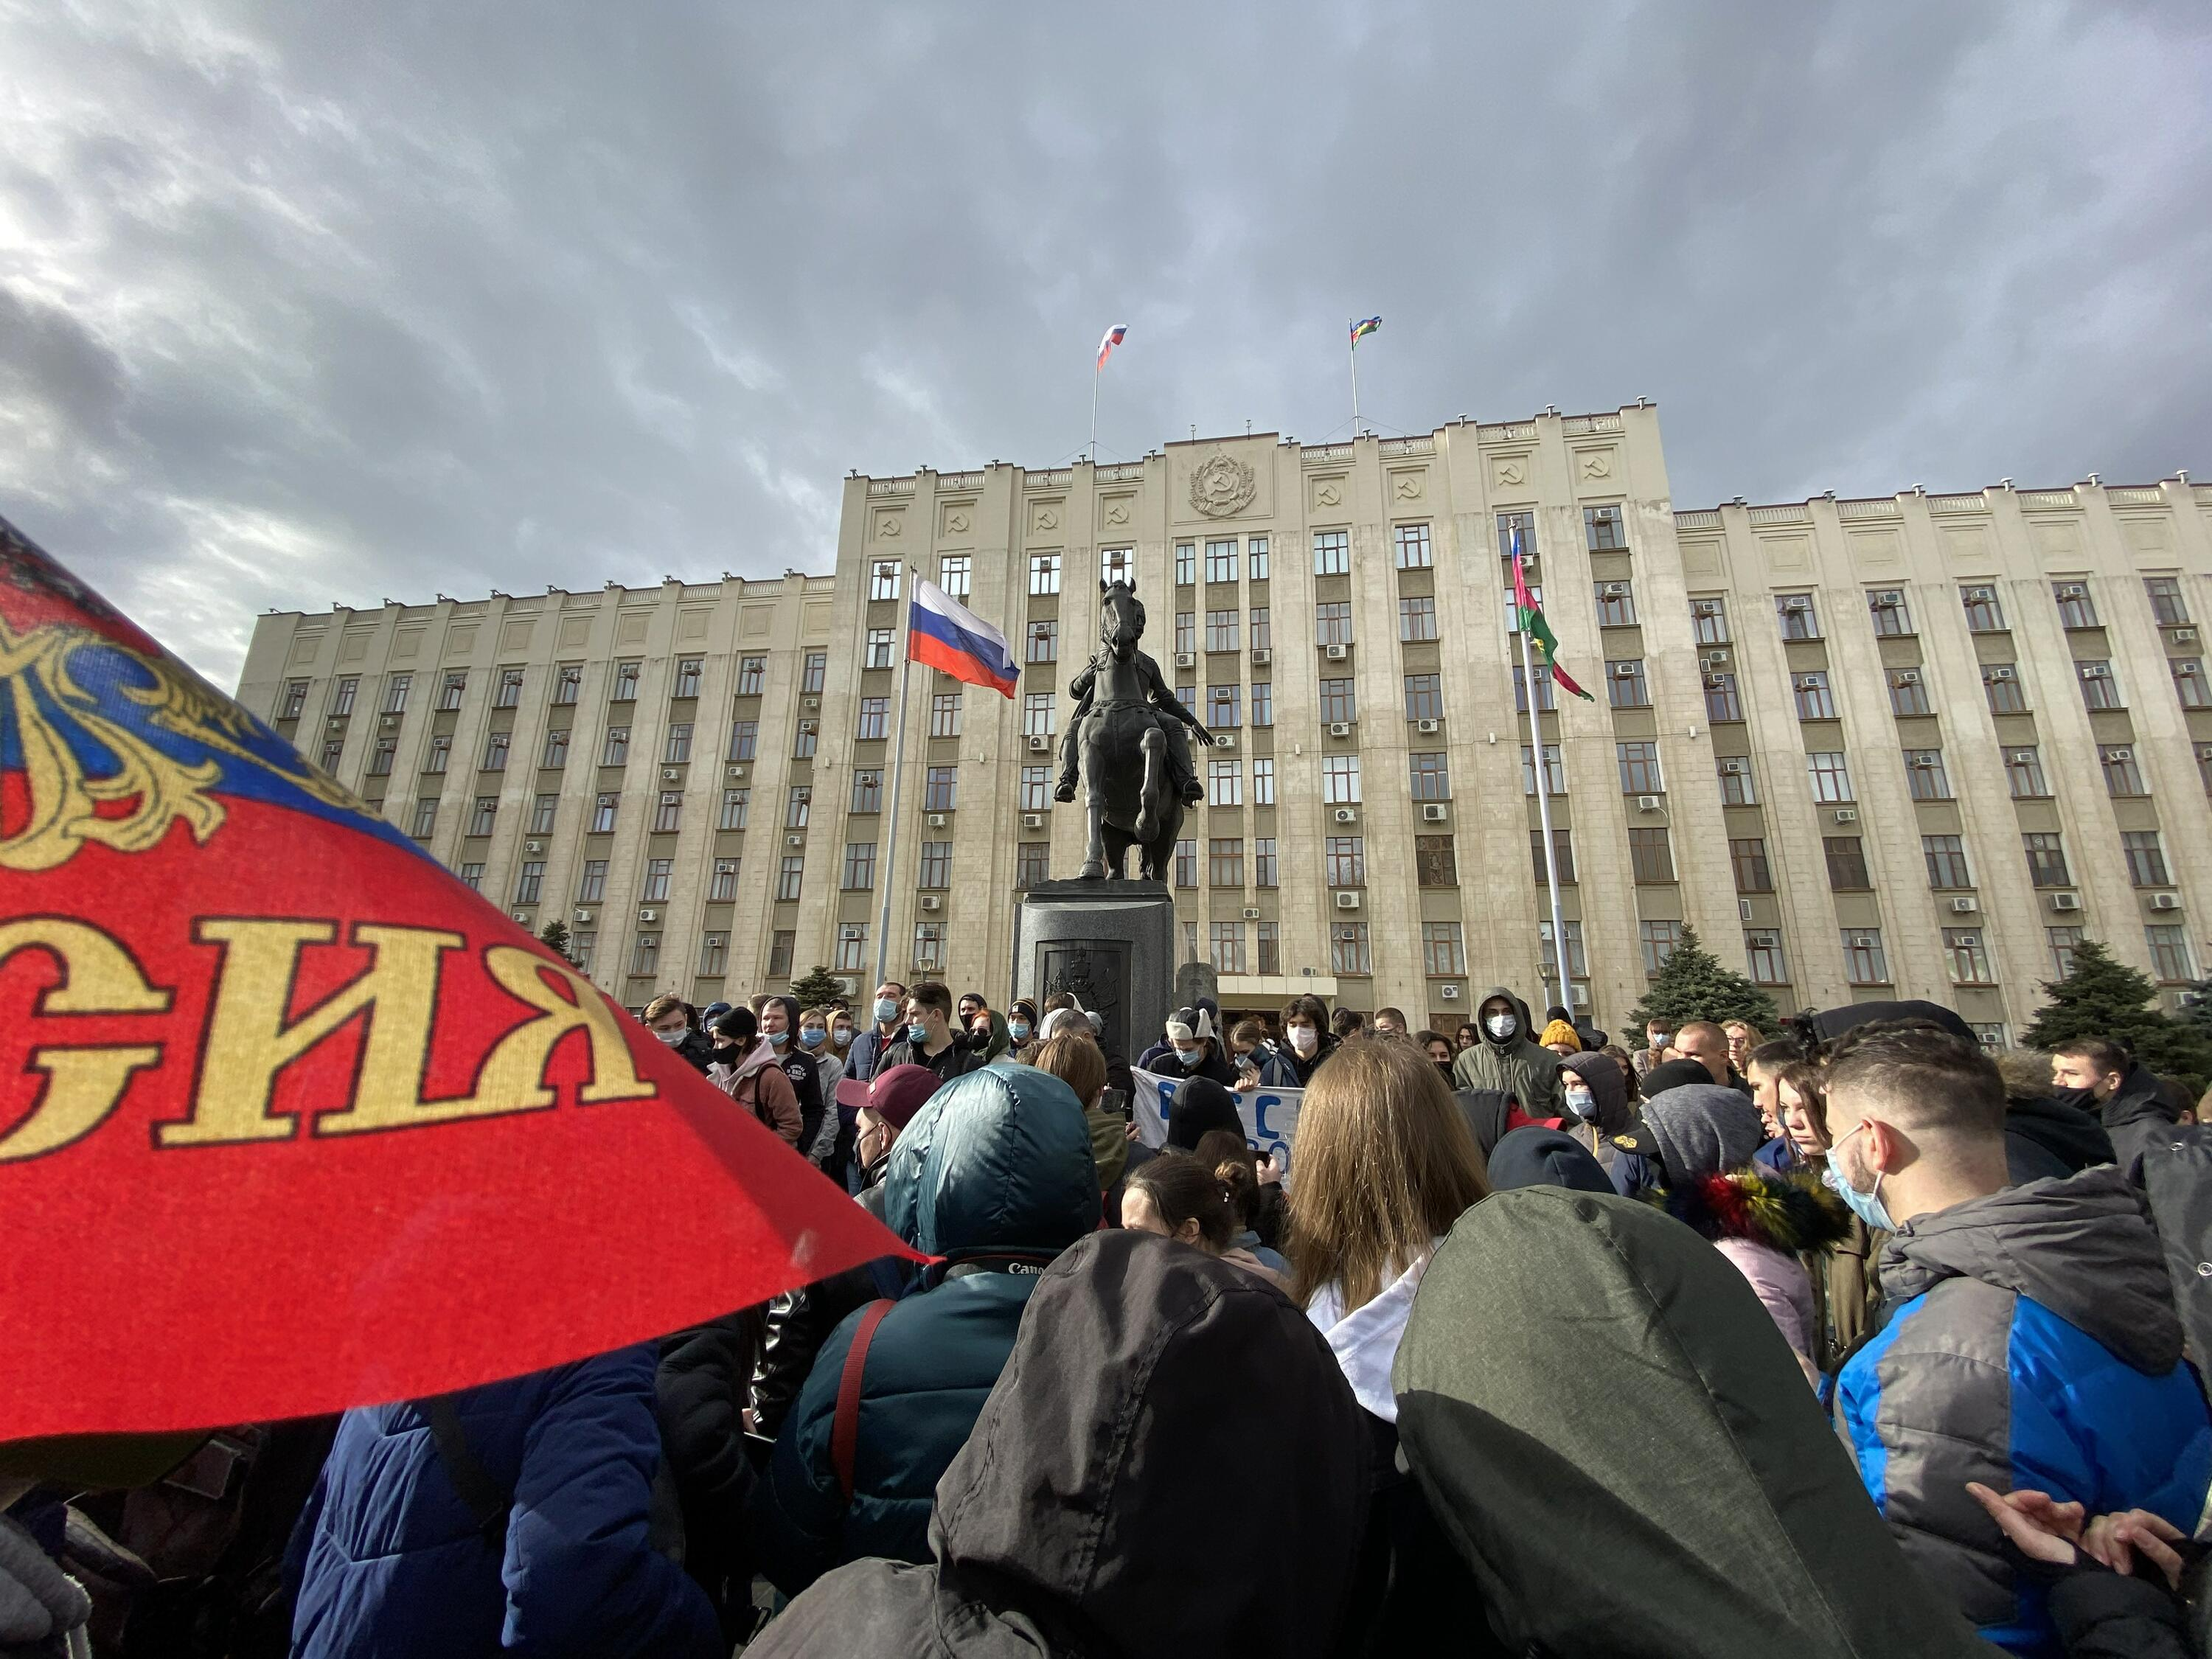 Protests in support of Alexei Navalny and political prisoners, 01/31/2021, Krasnodar. Russia. Source: WikiCommons.